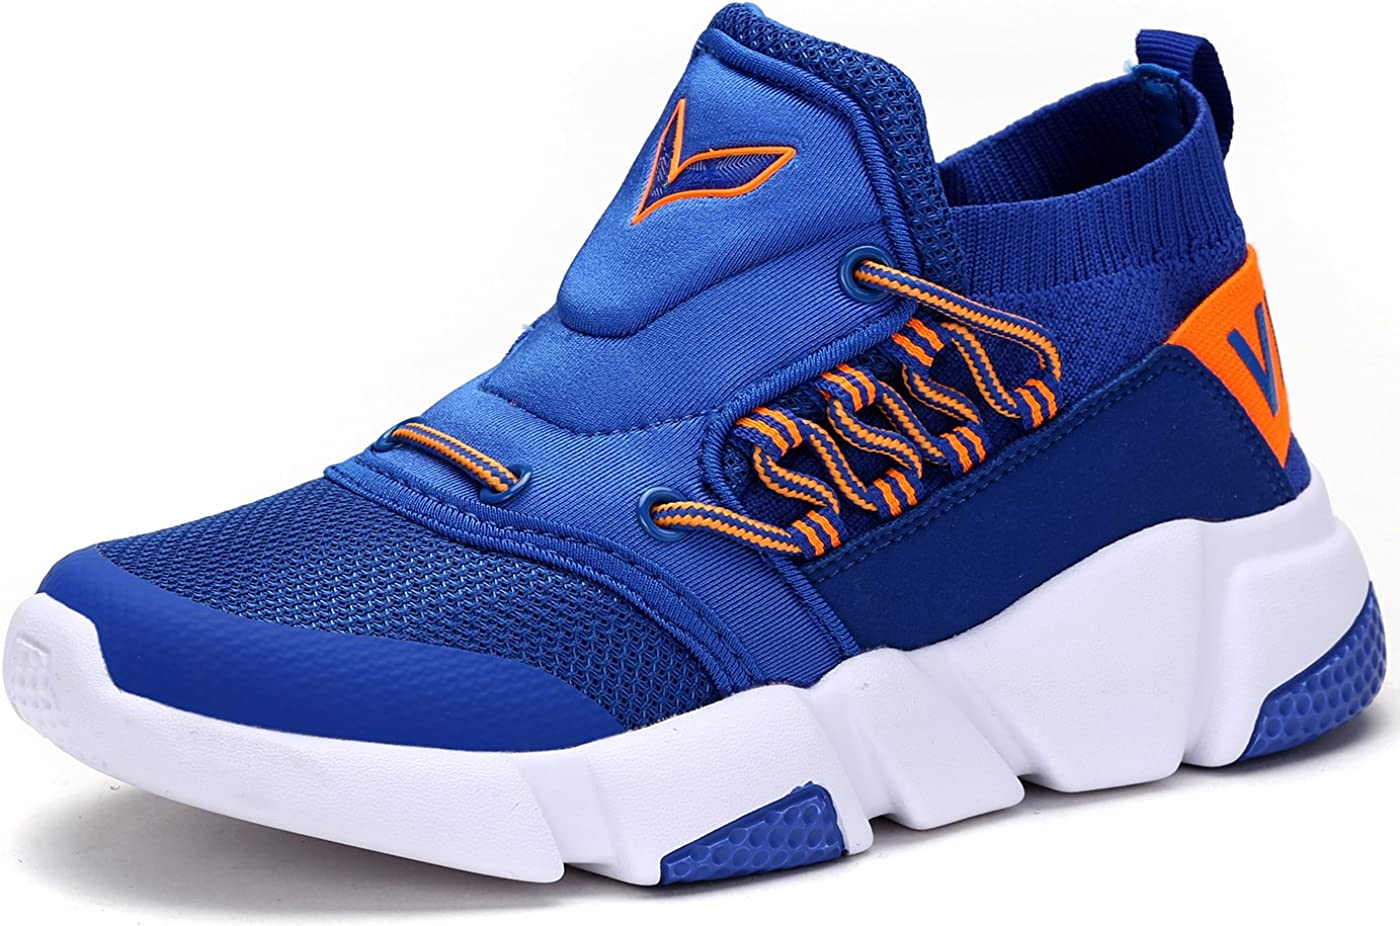 Boys Girls Mesh Sneaker Outdoor Athletic Slip on Casual Running Shoes Lightweight Sneakers